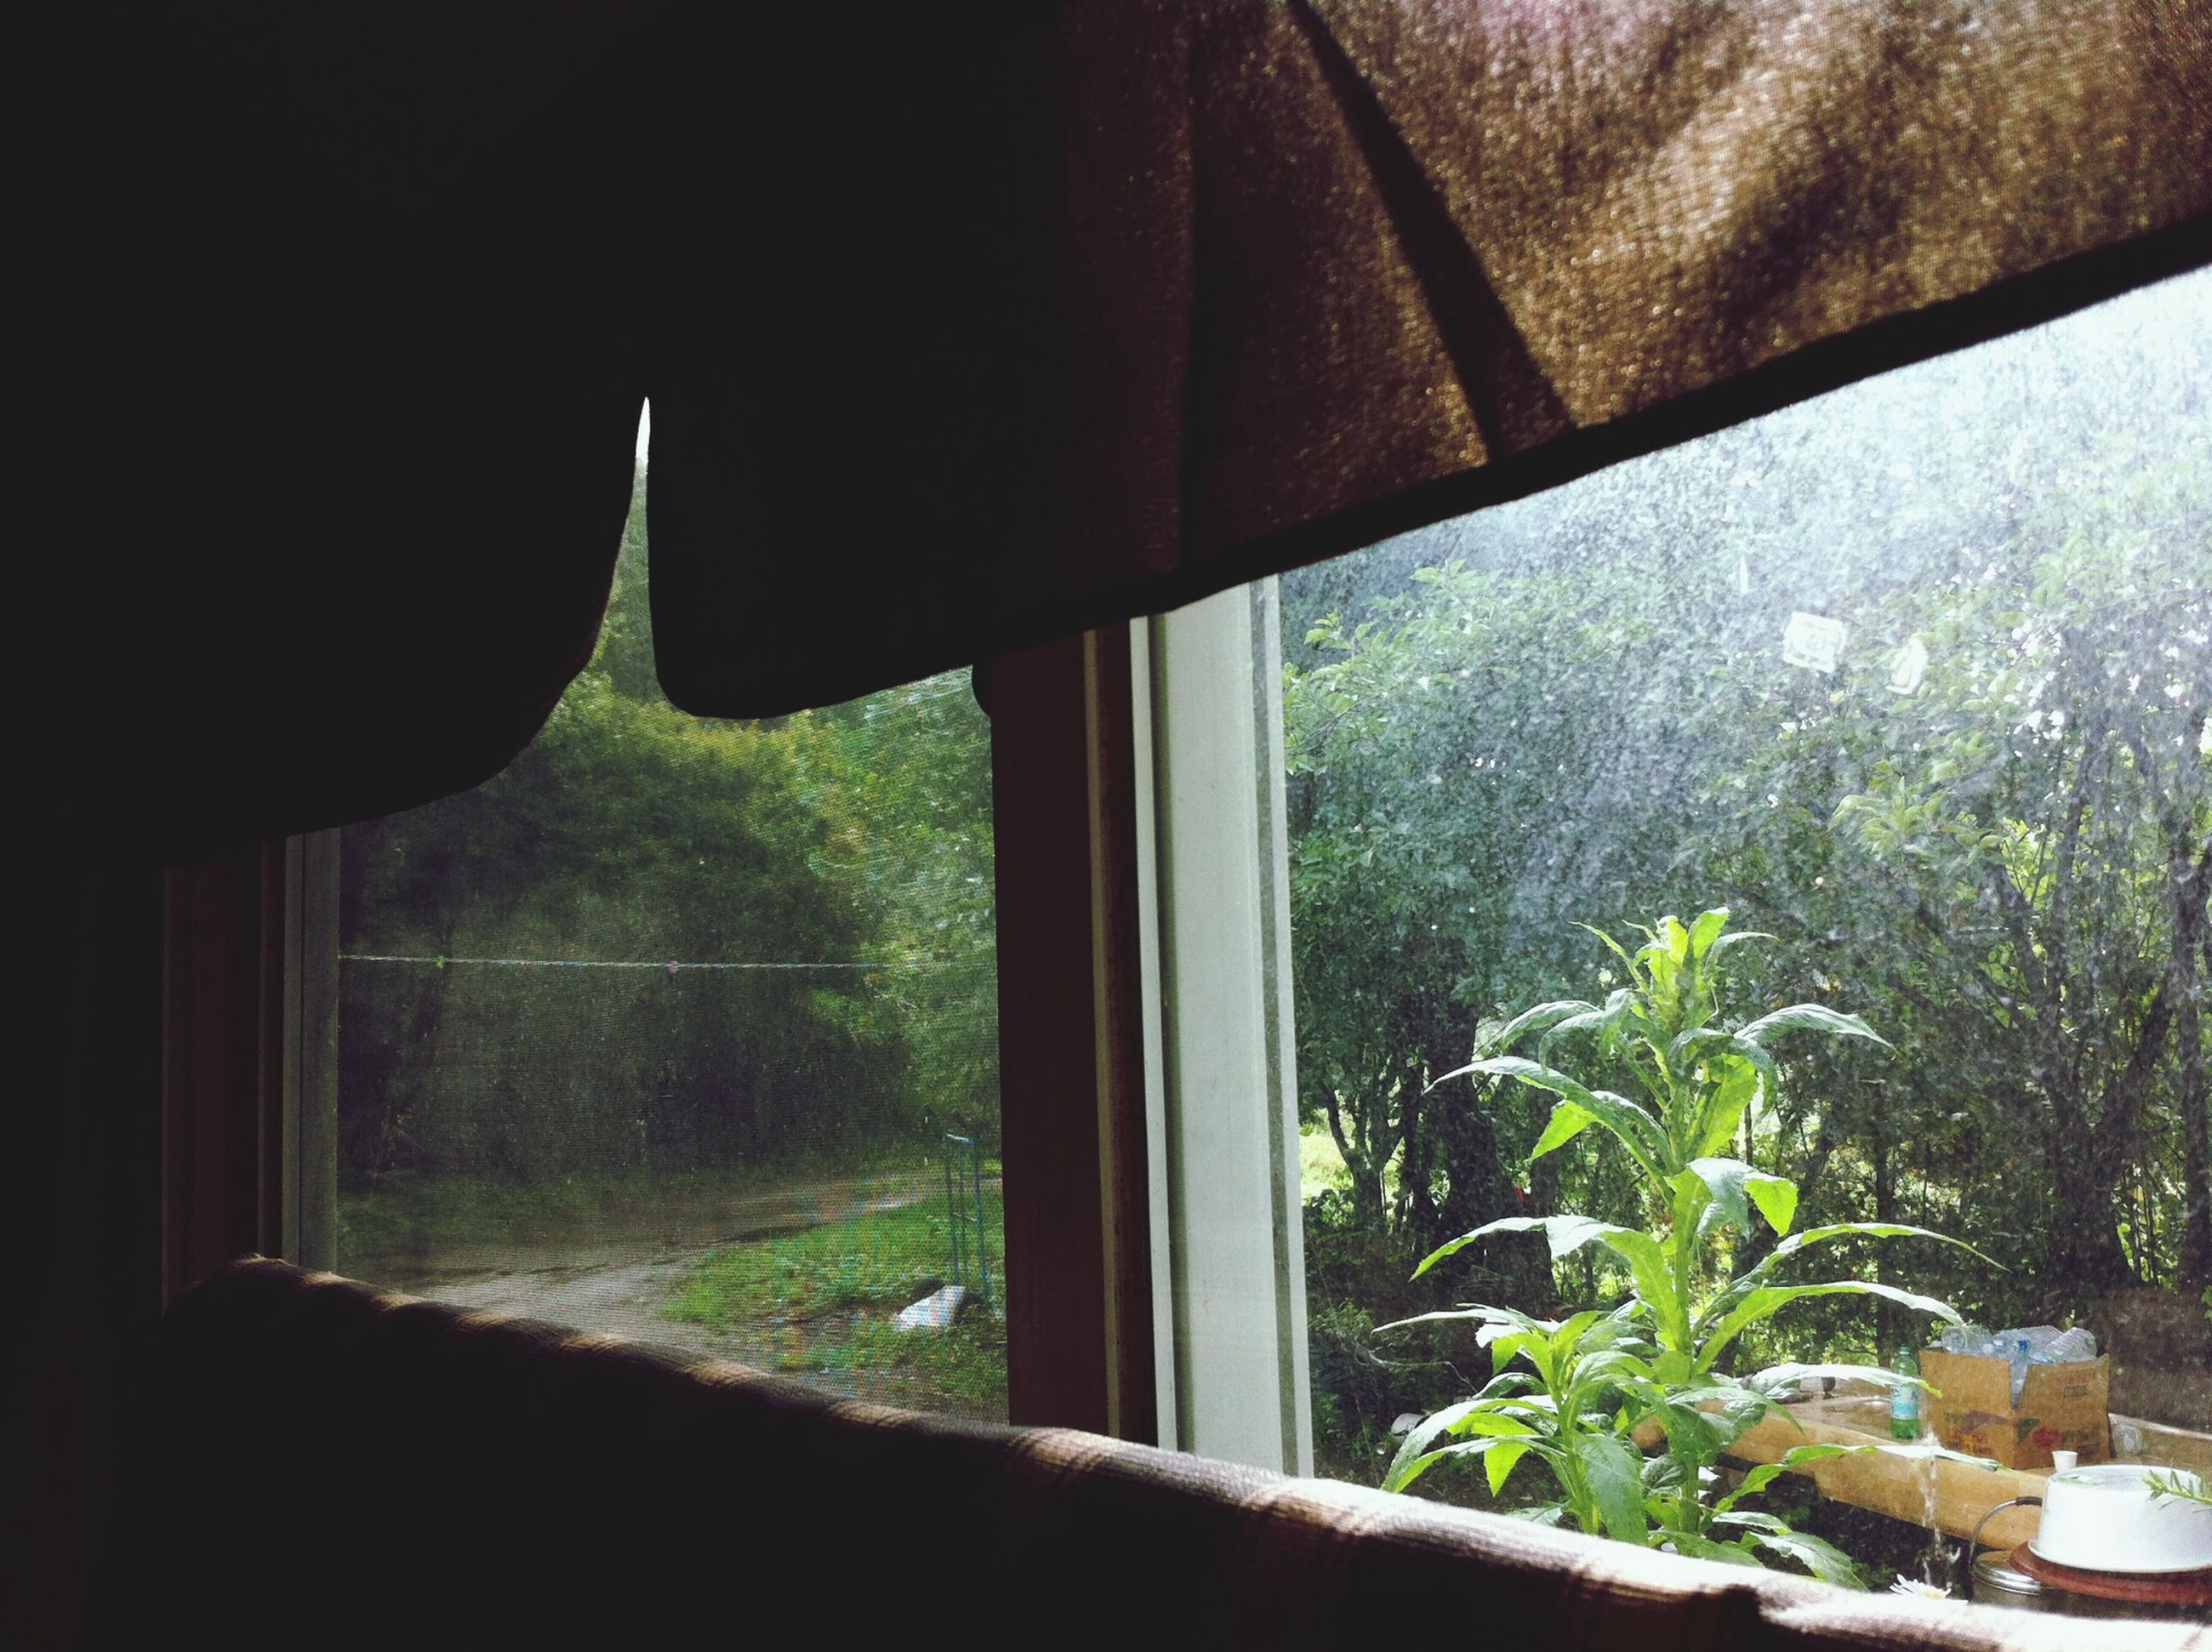 window, tree, growth, transparent, indoors, green color, plant, glass - material, sunlight, nature, day, beauty in nature, no people, potted plant, tranquility, grass, close-up, curtain, green